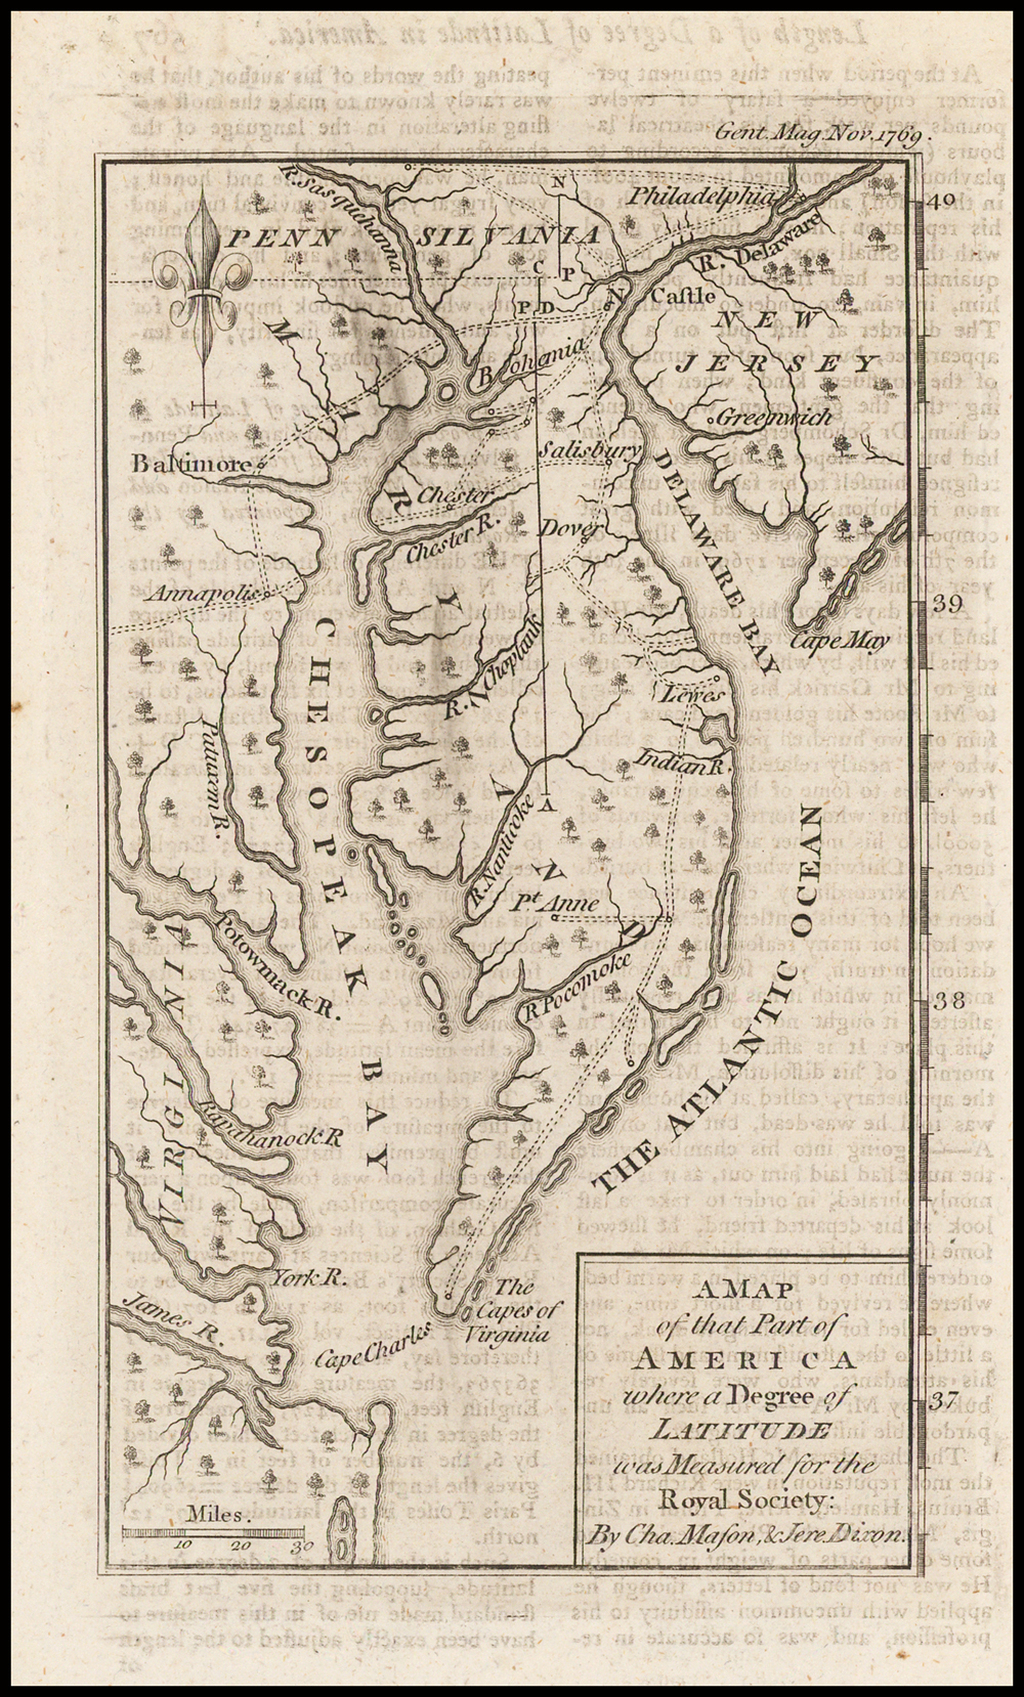 A Map of that Part of America where a Degree of Latitude was measured for the Royal Society by Cha. Mason & Jere: Dixon By Gentleman's Magazine